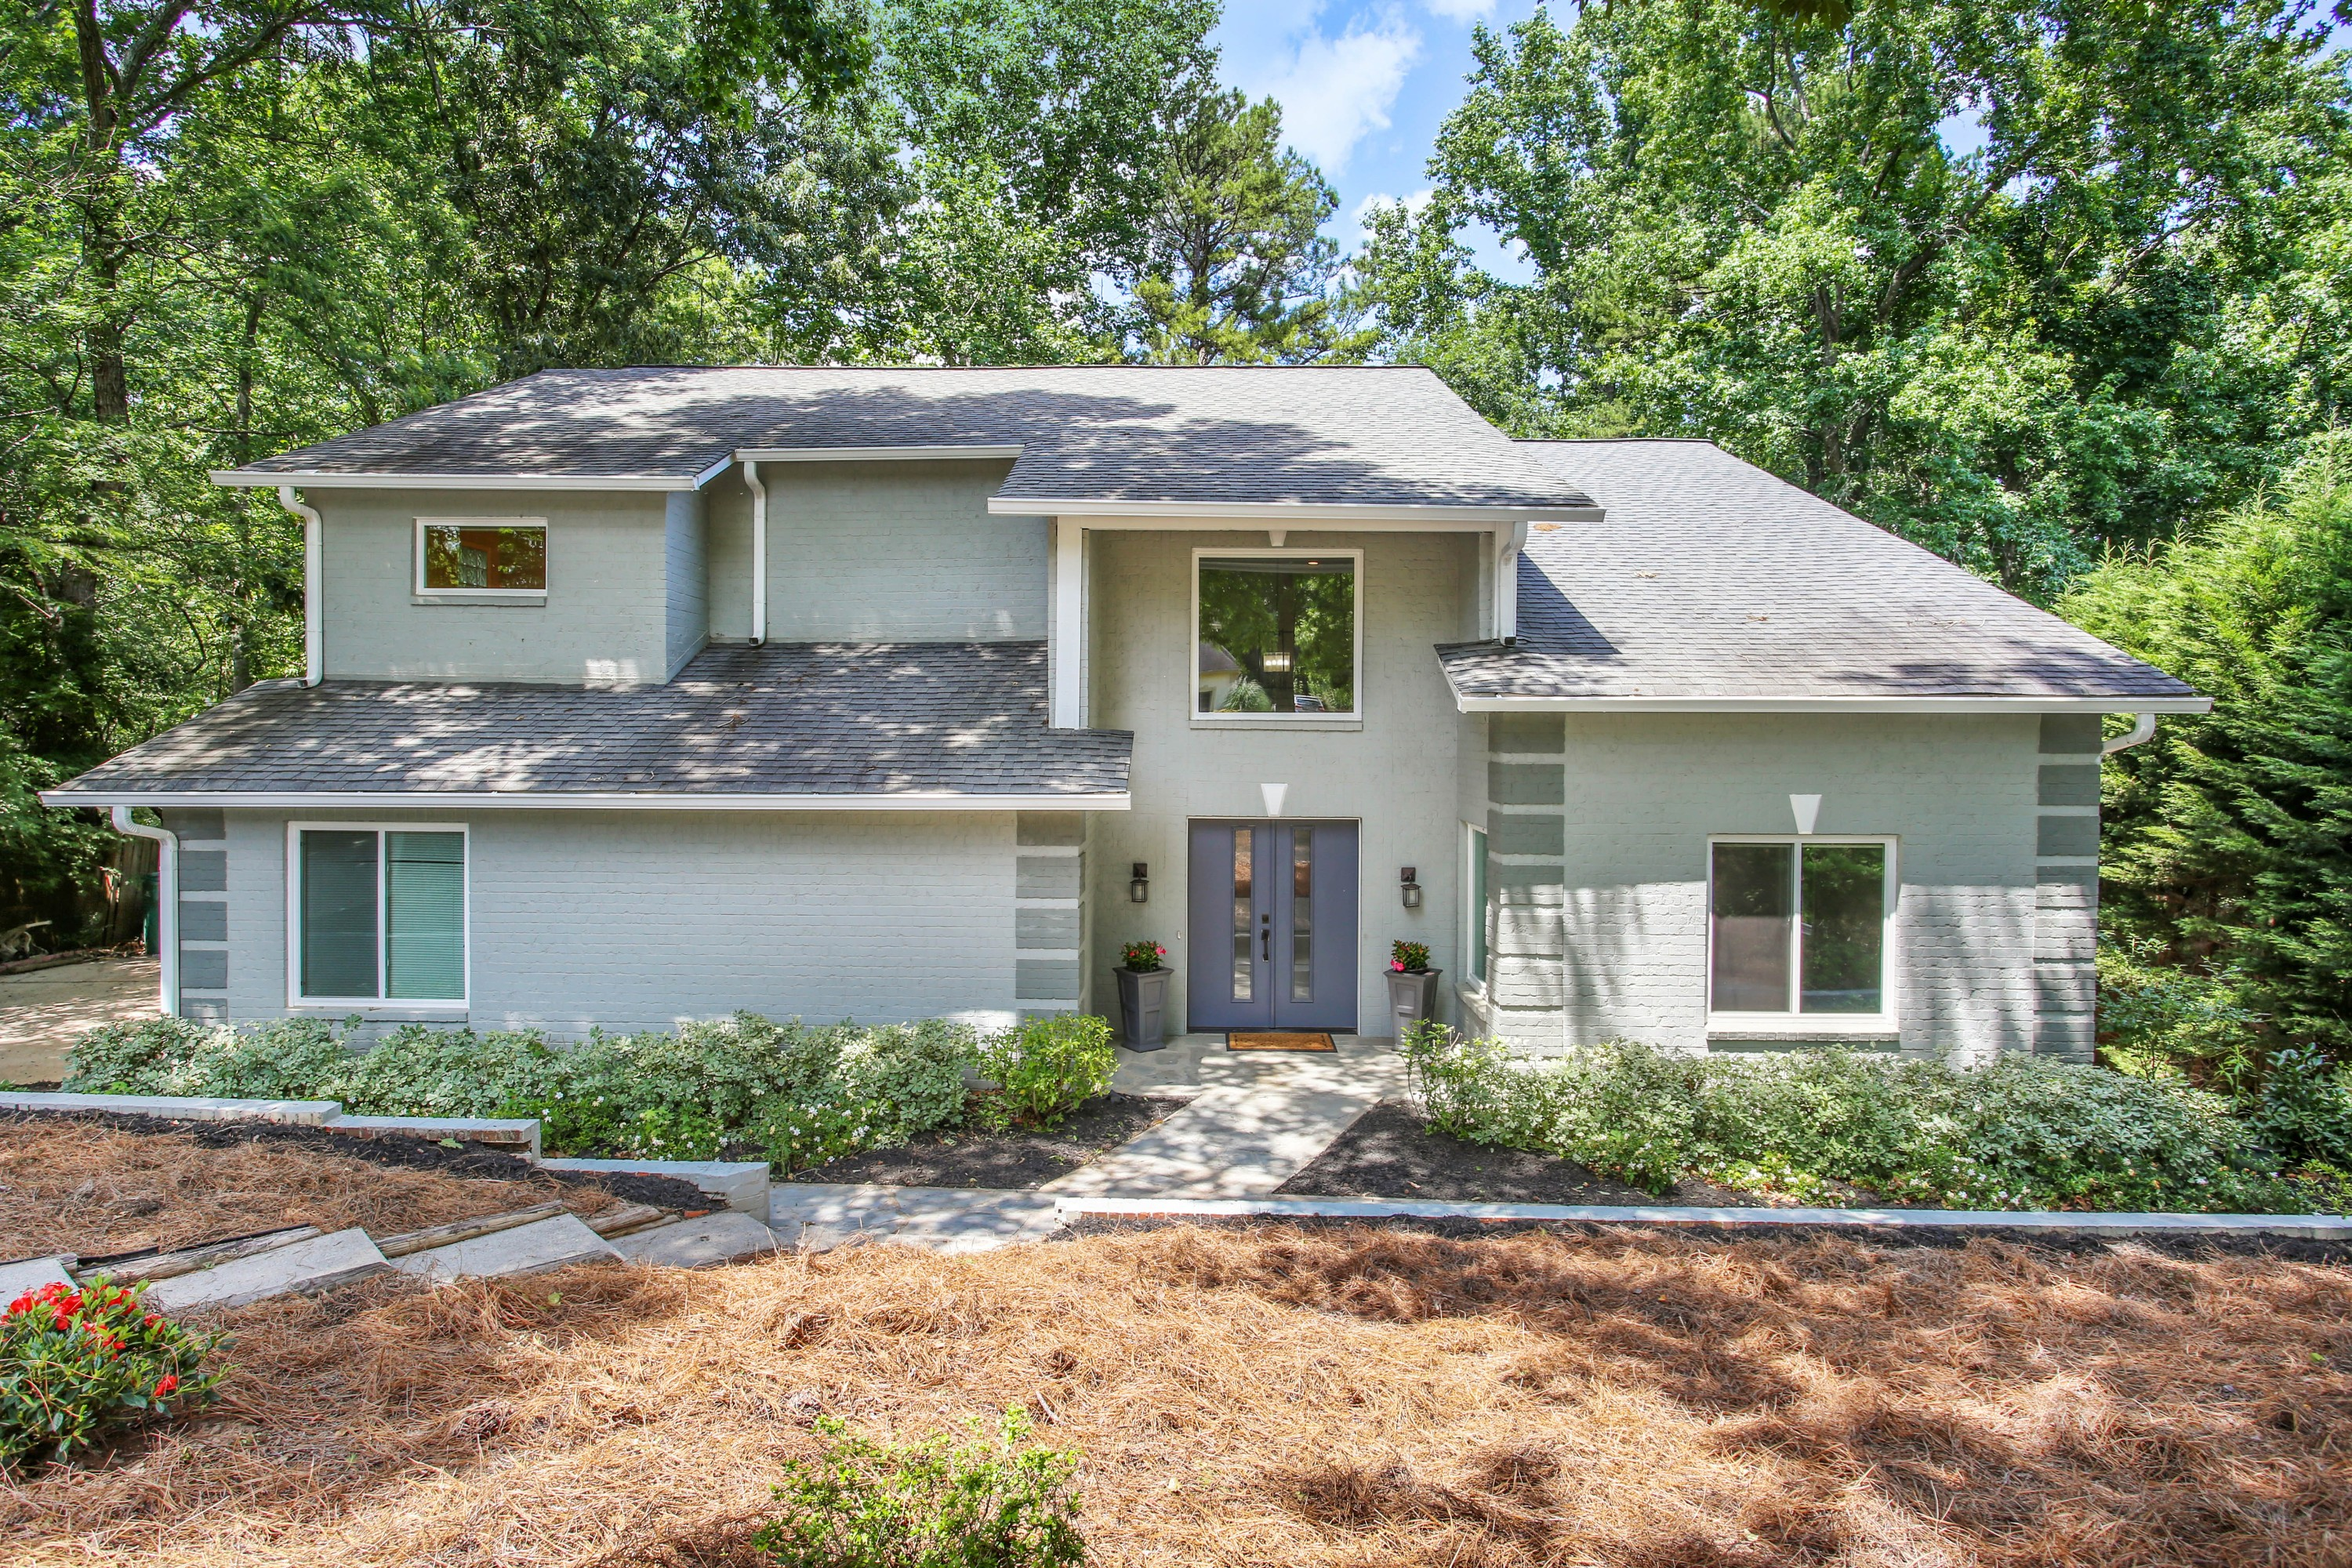 Updated Johns Creek Home With Space For Everyone!